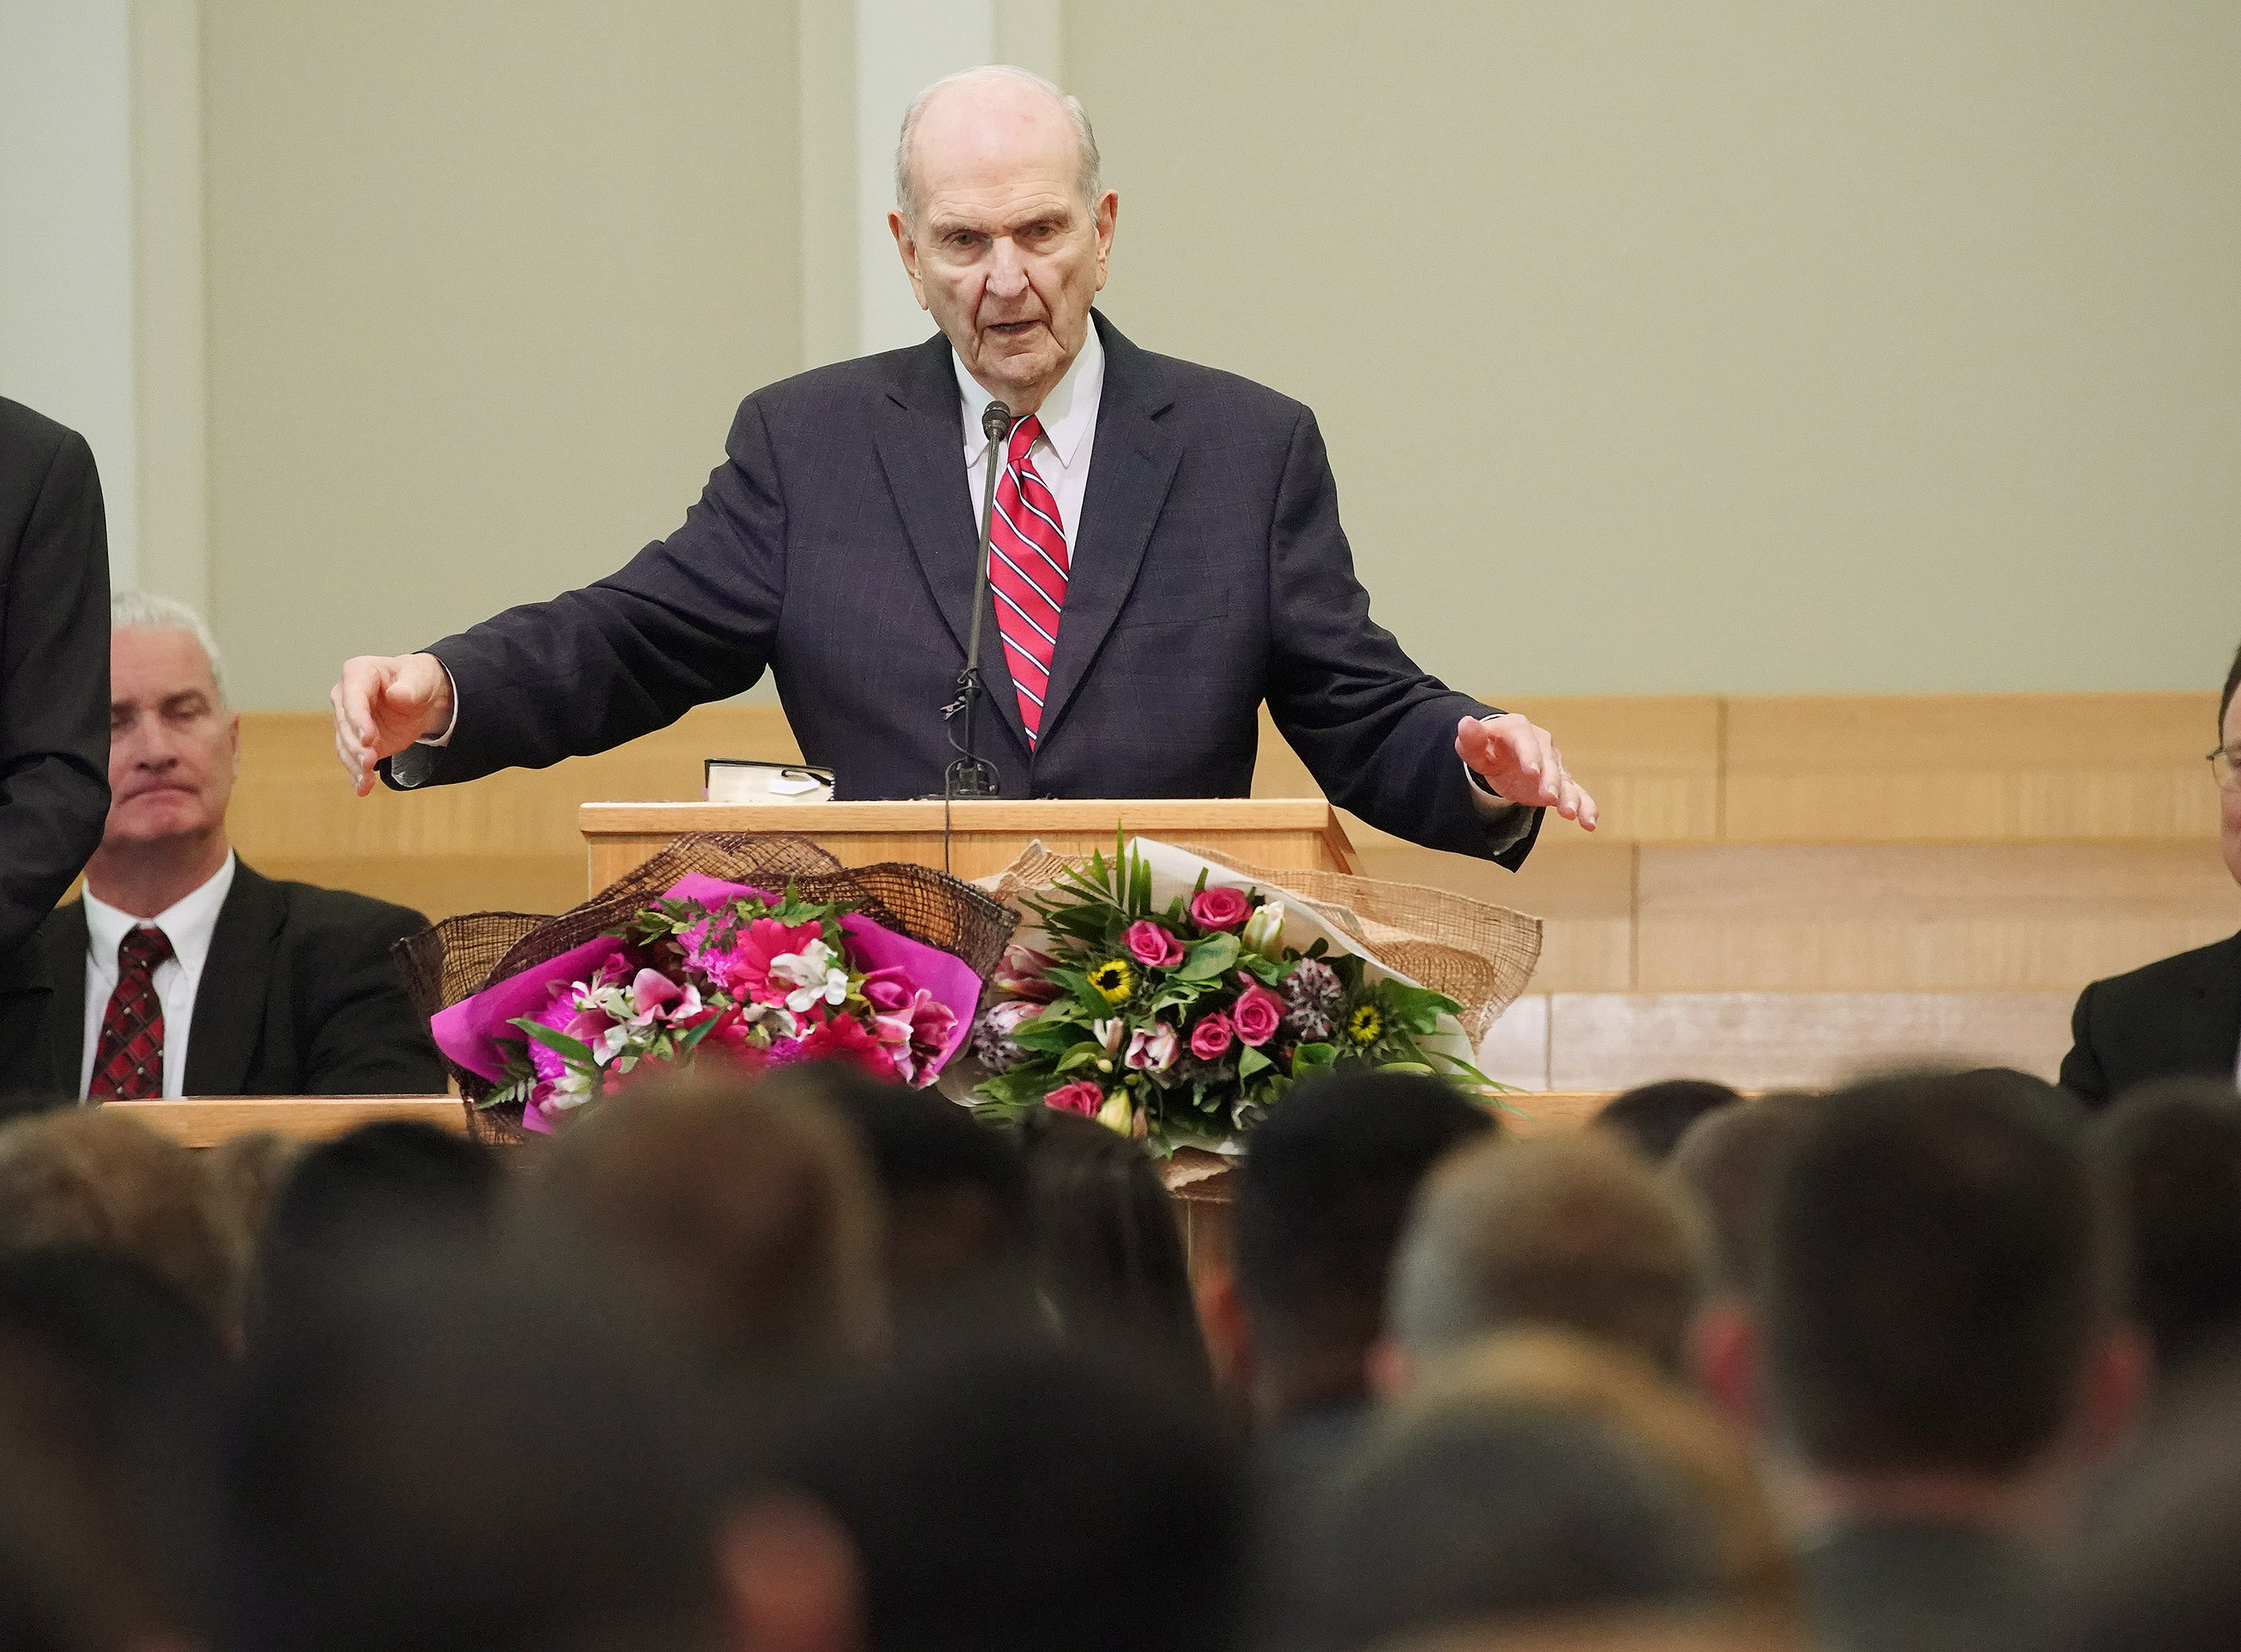 President Russell M. Nelson of The Church of Jesus Christ of Latter-day Saints speaks with missionaries in Auckland, New Zealand, on Tuesday, May 21, 2019.